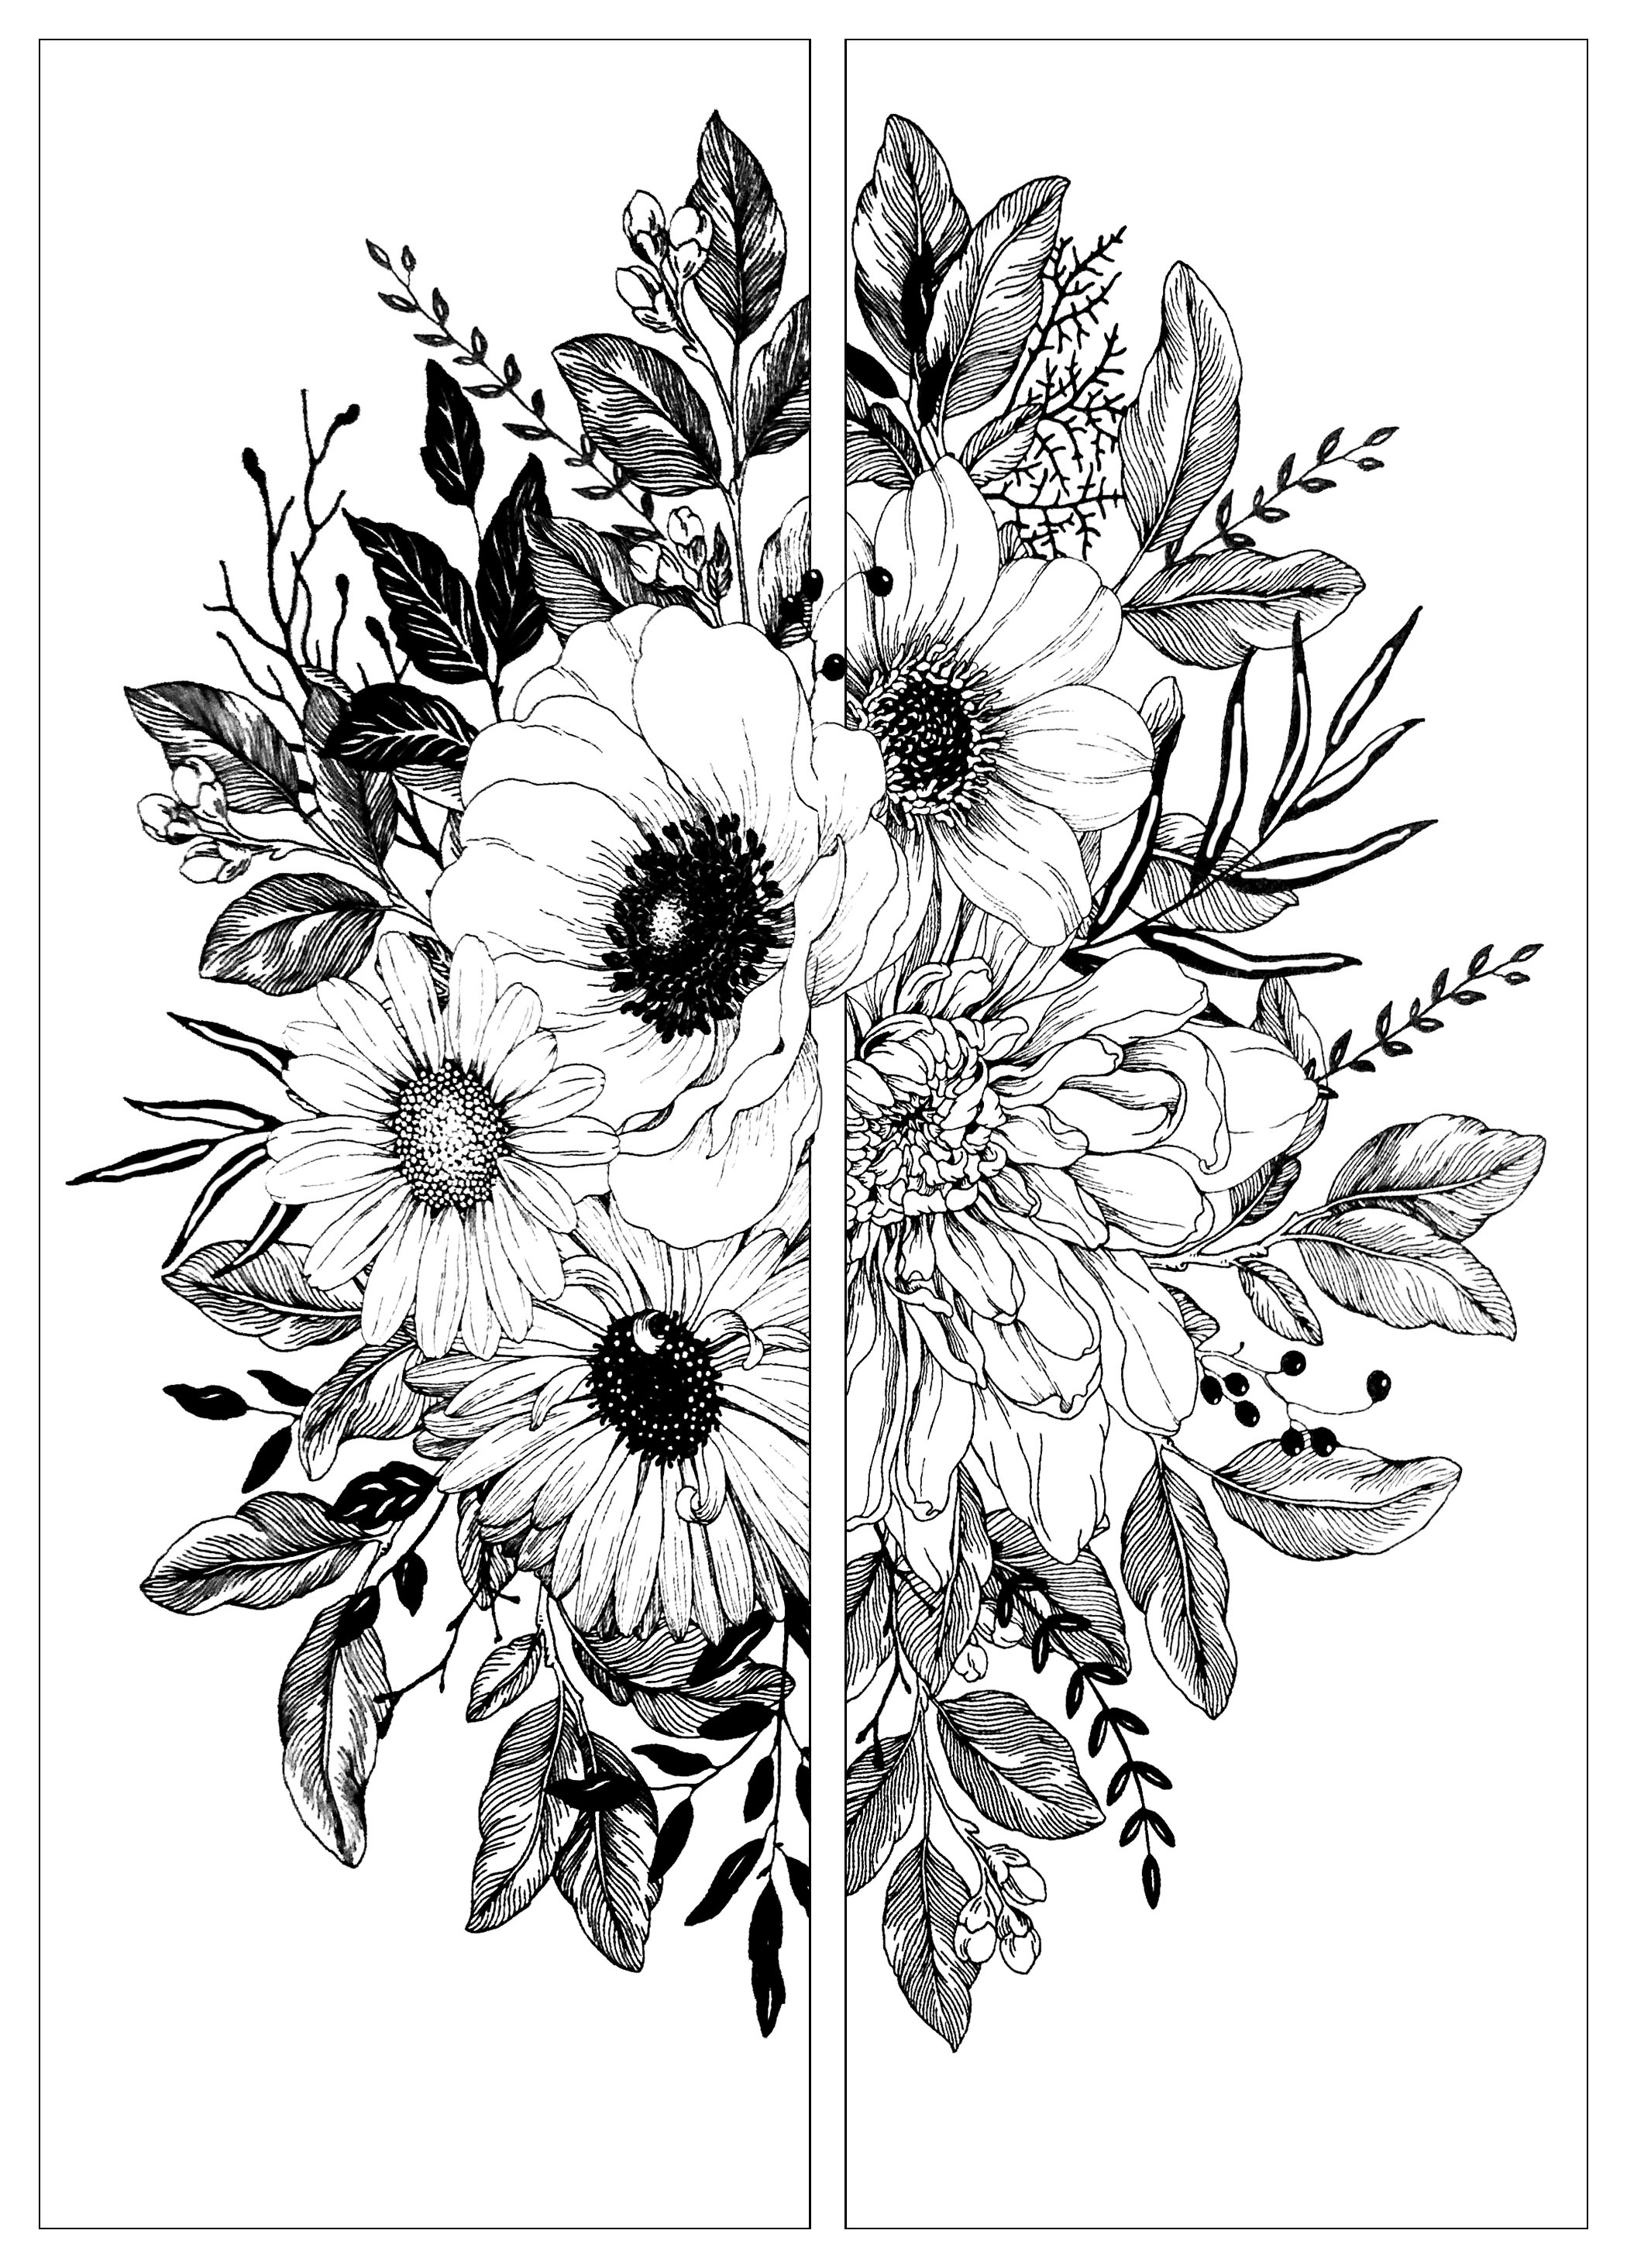 picture of a flower to color flower coloring pages for adults best coloring pages for a picture flower color of to